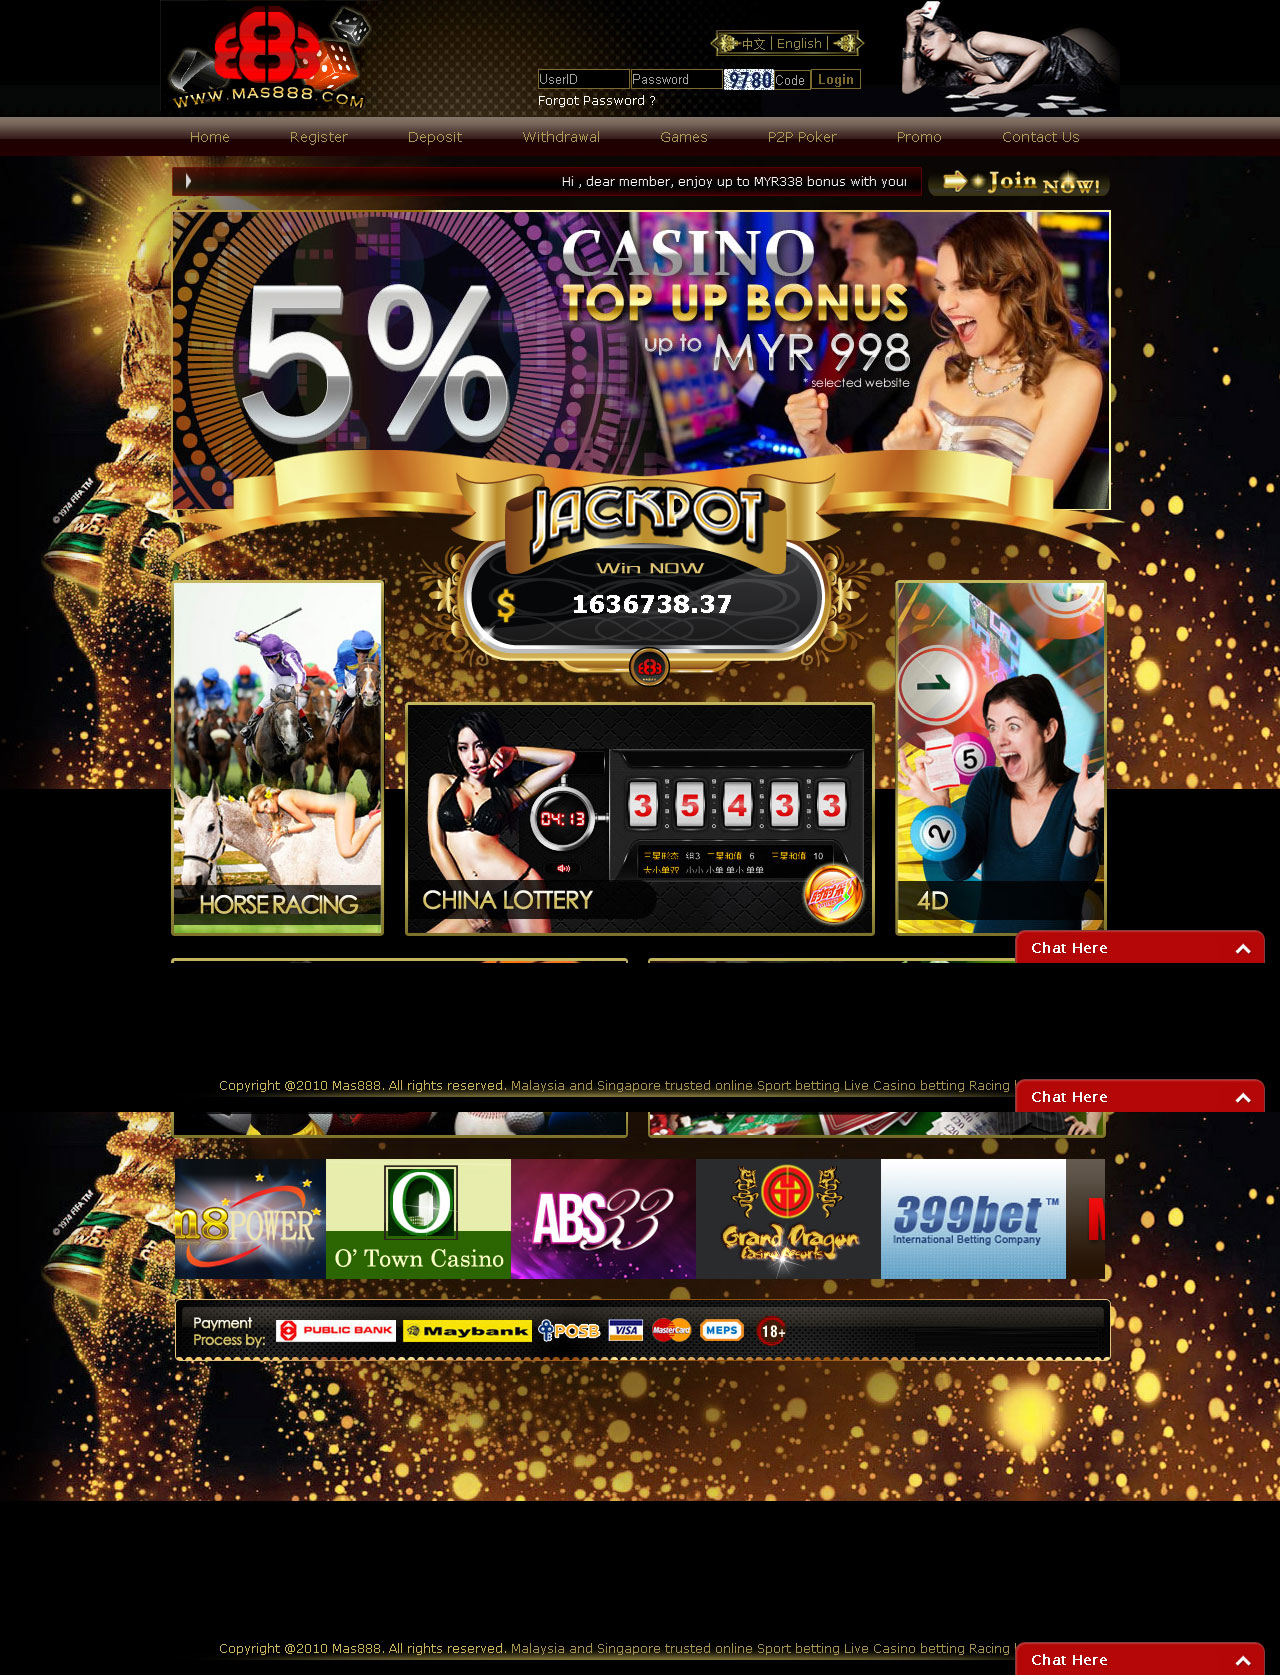 Secure and Trusted Online Casinos